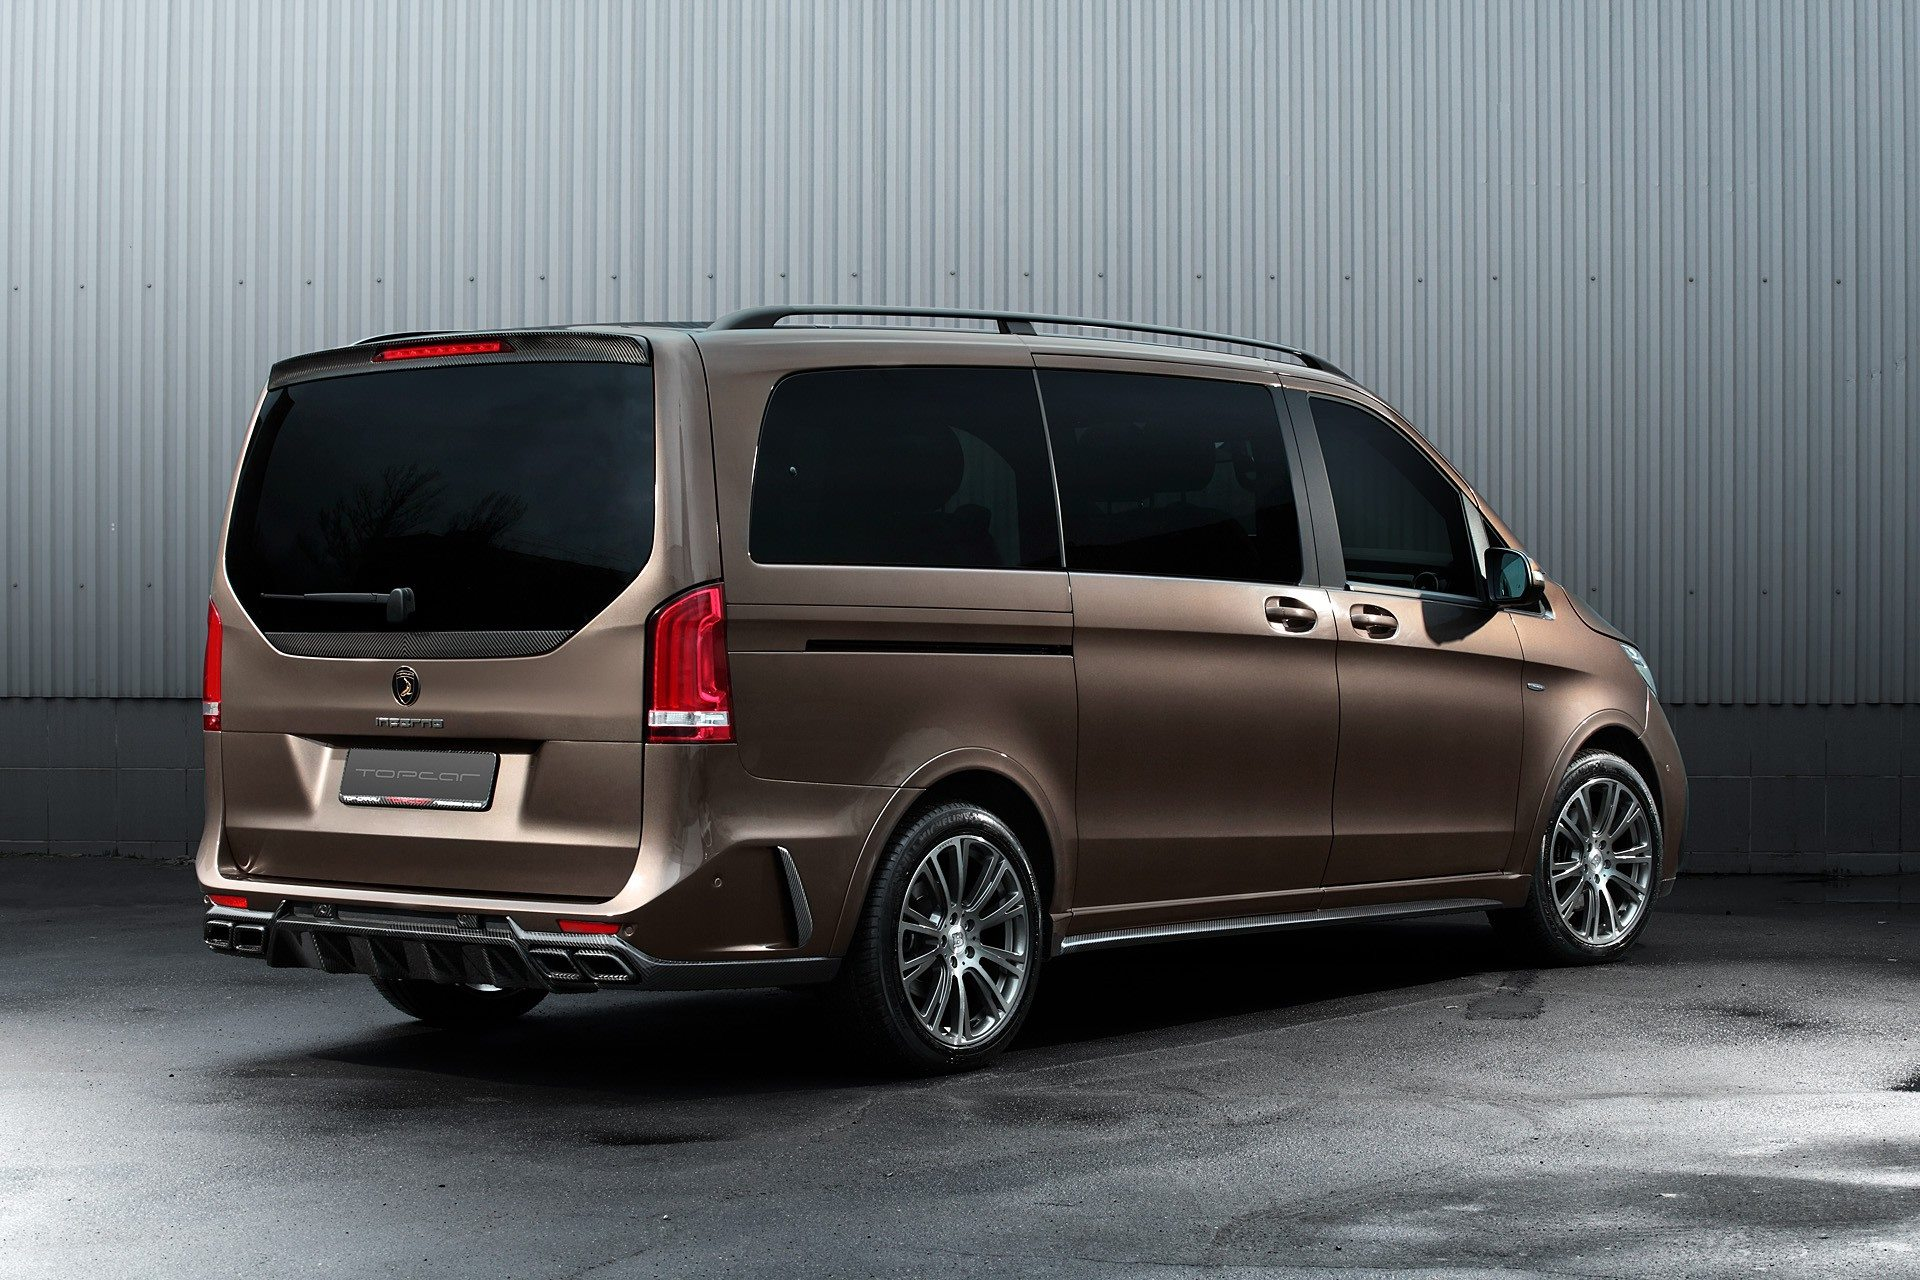 mercedes v class gets carbon hood in topcar inferno tuning. Black Bedroom Furniture Sets. Home Design Ideas